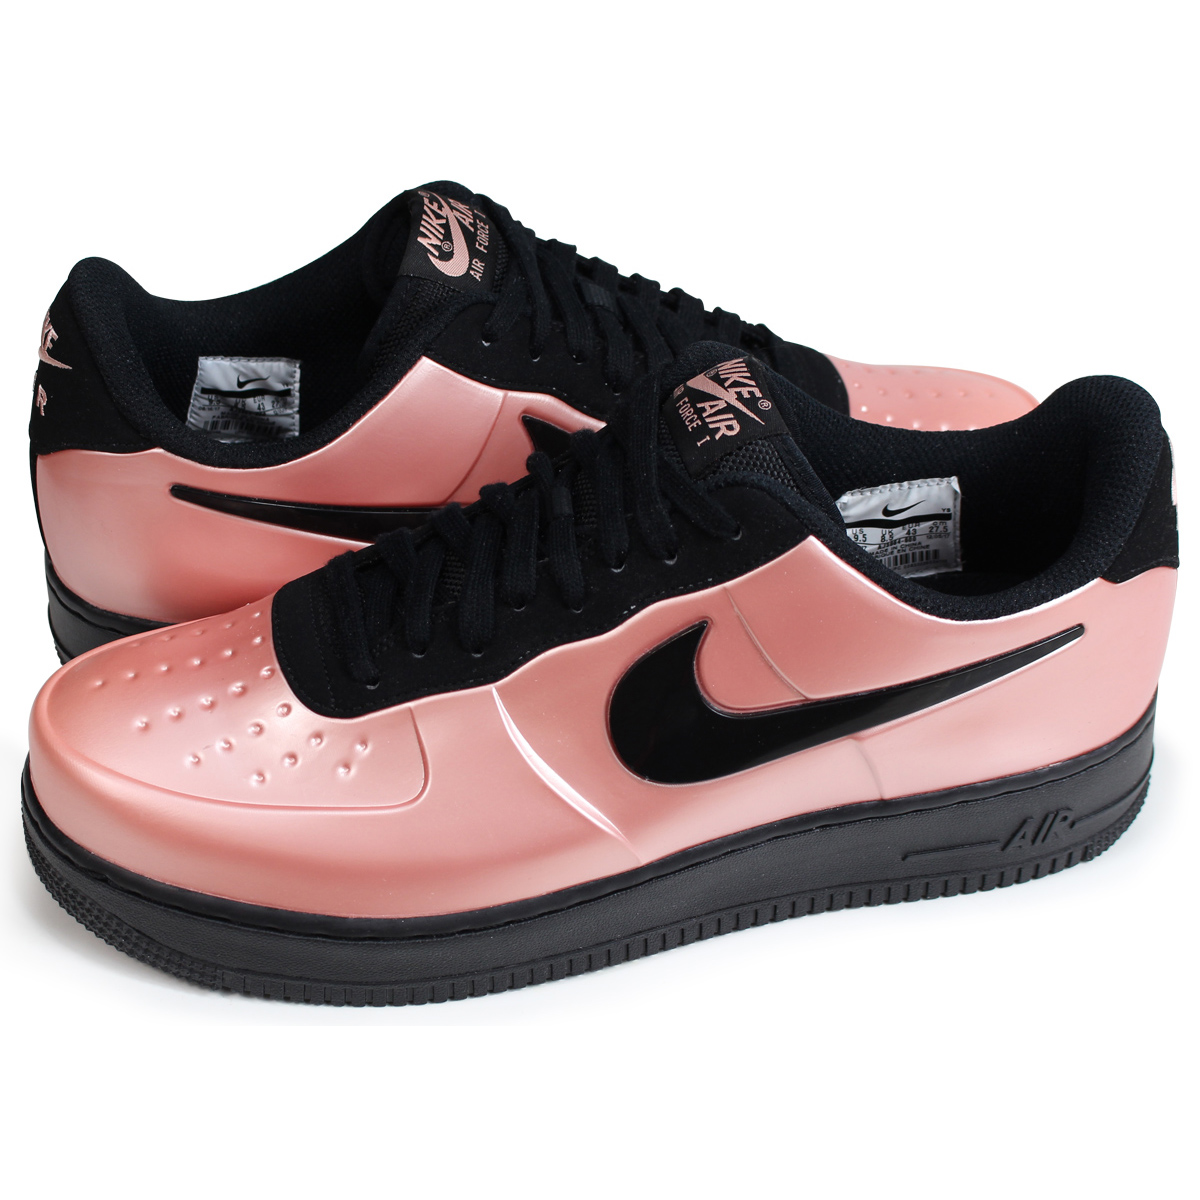 size 40 06dee 403d6 NIKE AIR FORCE 1 FOAMPOSITE PRO CUPSOLE Nike air force 1 フォームポジットスニーカーメンズ  AJ3664 ...